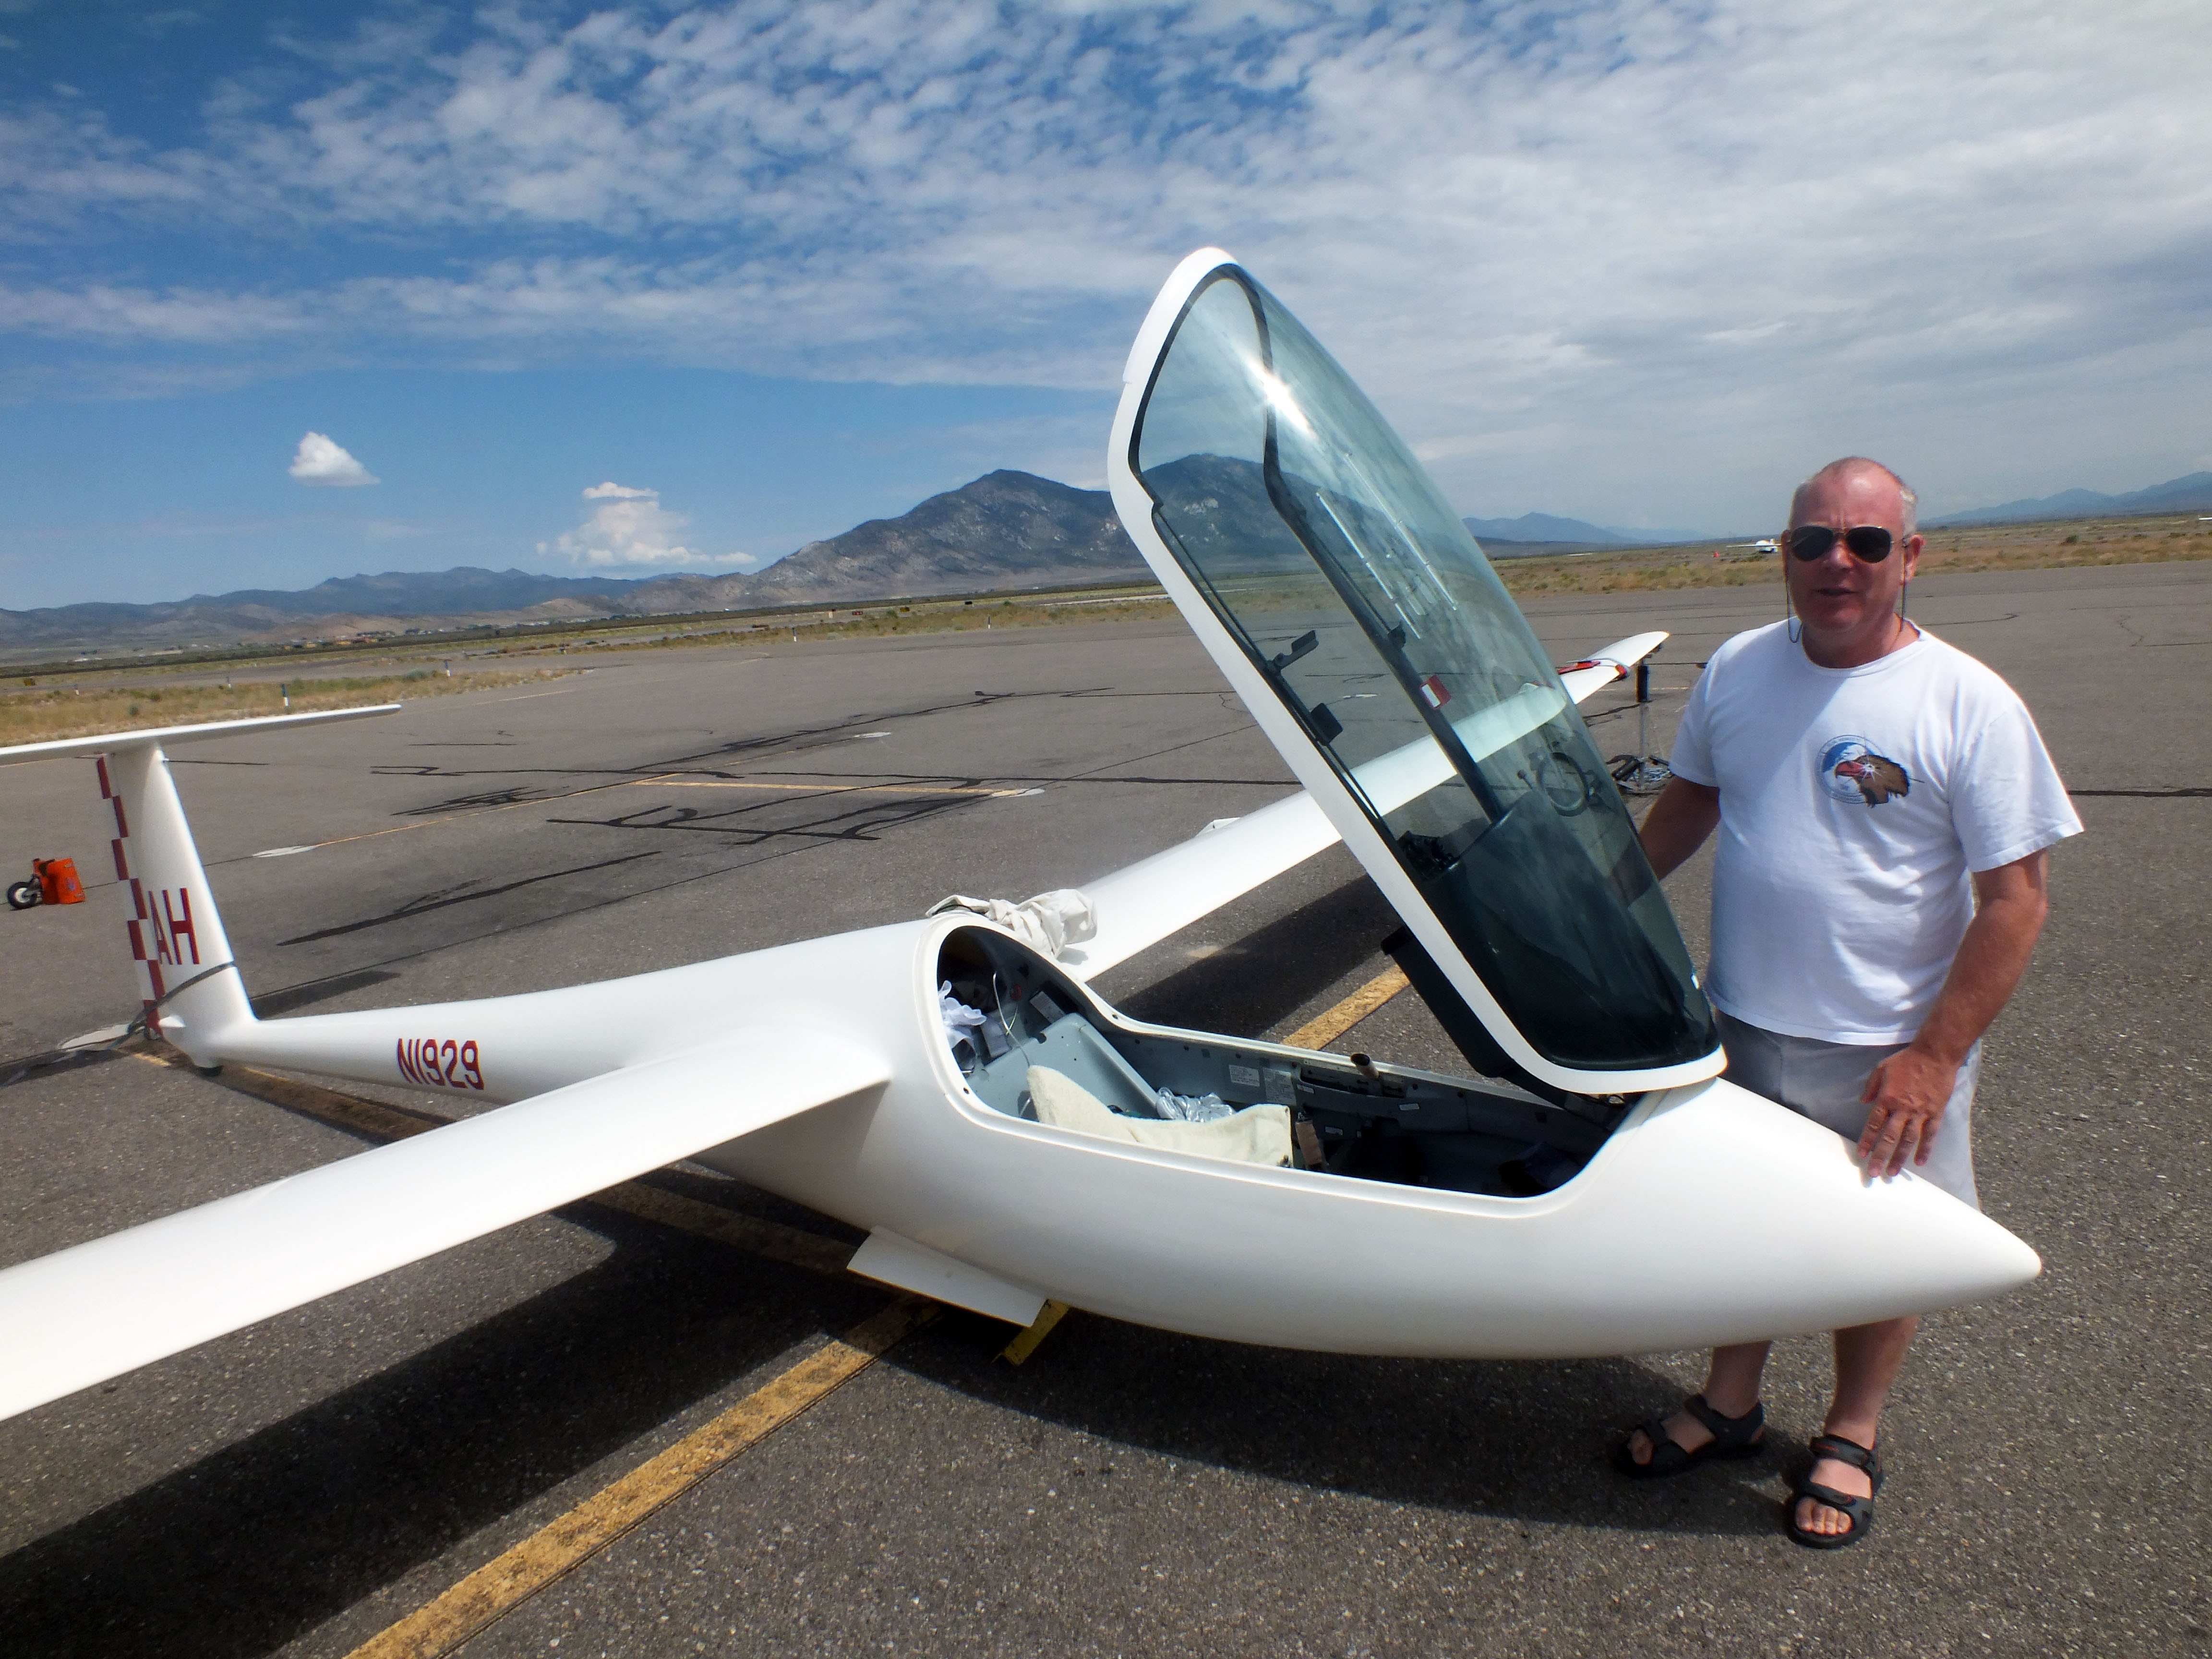 Glider pilots flock to Ely this summer